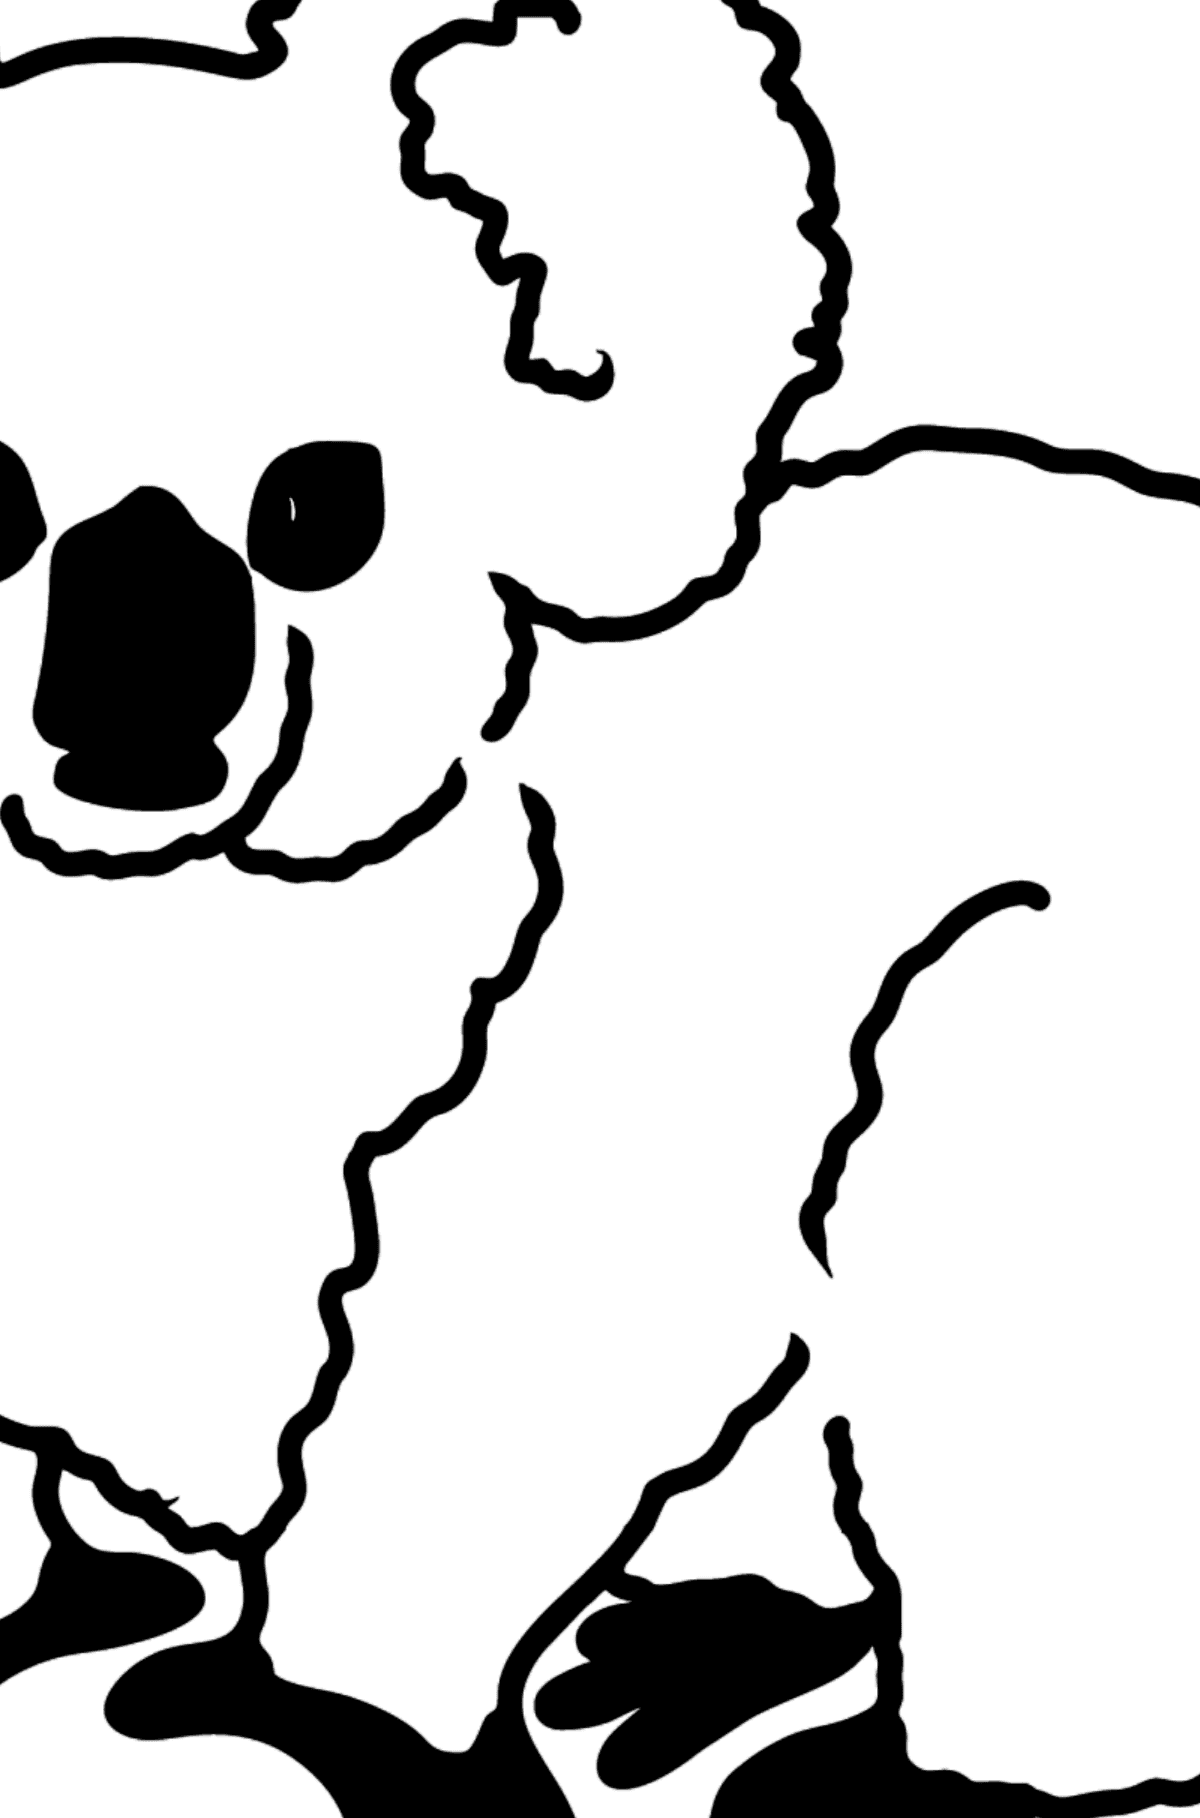 Koala coloring page - Coloring by Letters for Kids